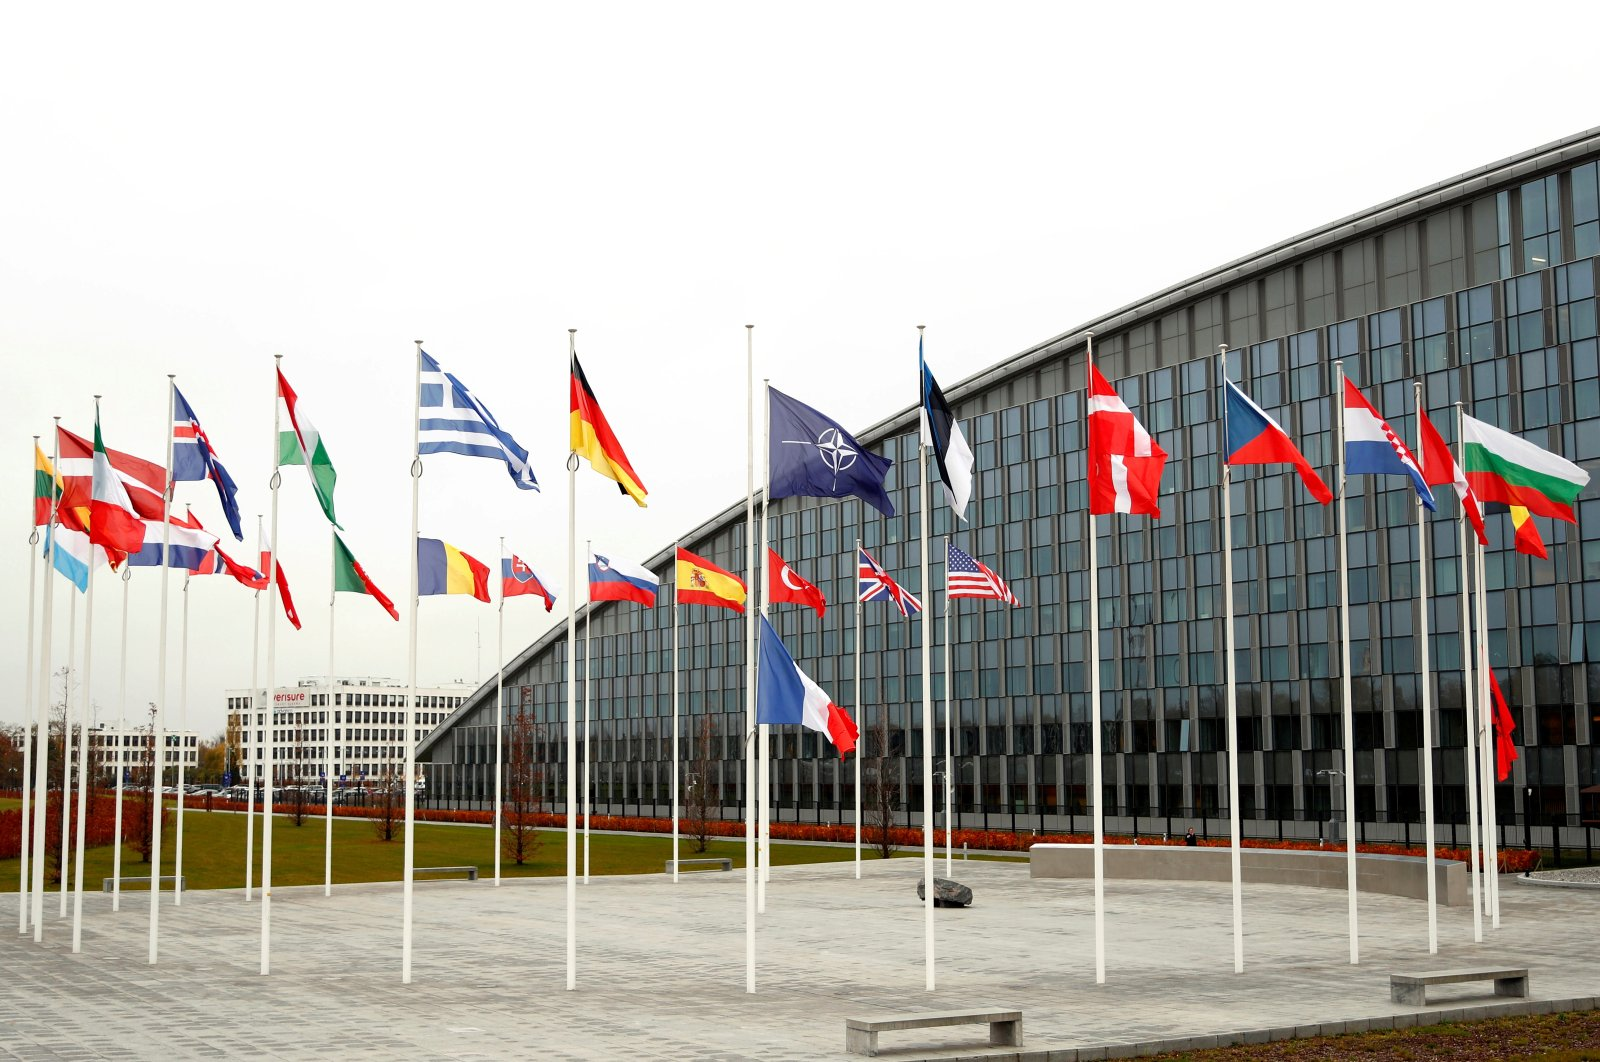 Flags of NATO member countries are seen at the NATO headquarters in Brussels, Belgium, Nov. 26, 2019. (Reuters Photo)